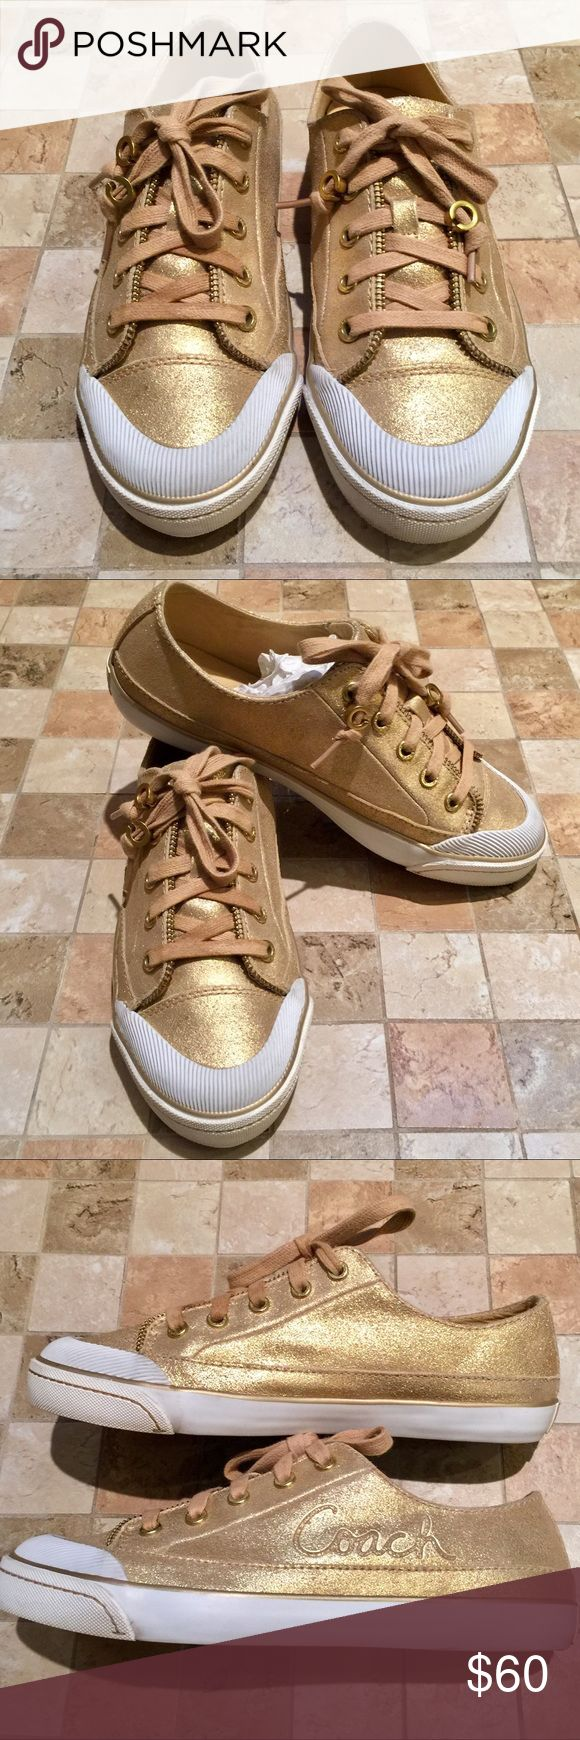 Coach Flame Sneakers Coach Flame Sneakers, Size 8. Excellent condition.  Worn maybe 3 times.  Gold shimmer exterior, Coach Logo on the outside of each shoe, & on the back.  The shoelaces have adorable gold C's on the ends.                    Tags: Coach gold sneakers, converse, vans, puma Coach Shoes Sneakers